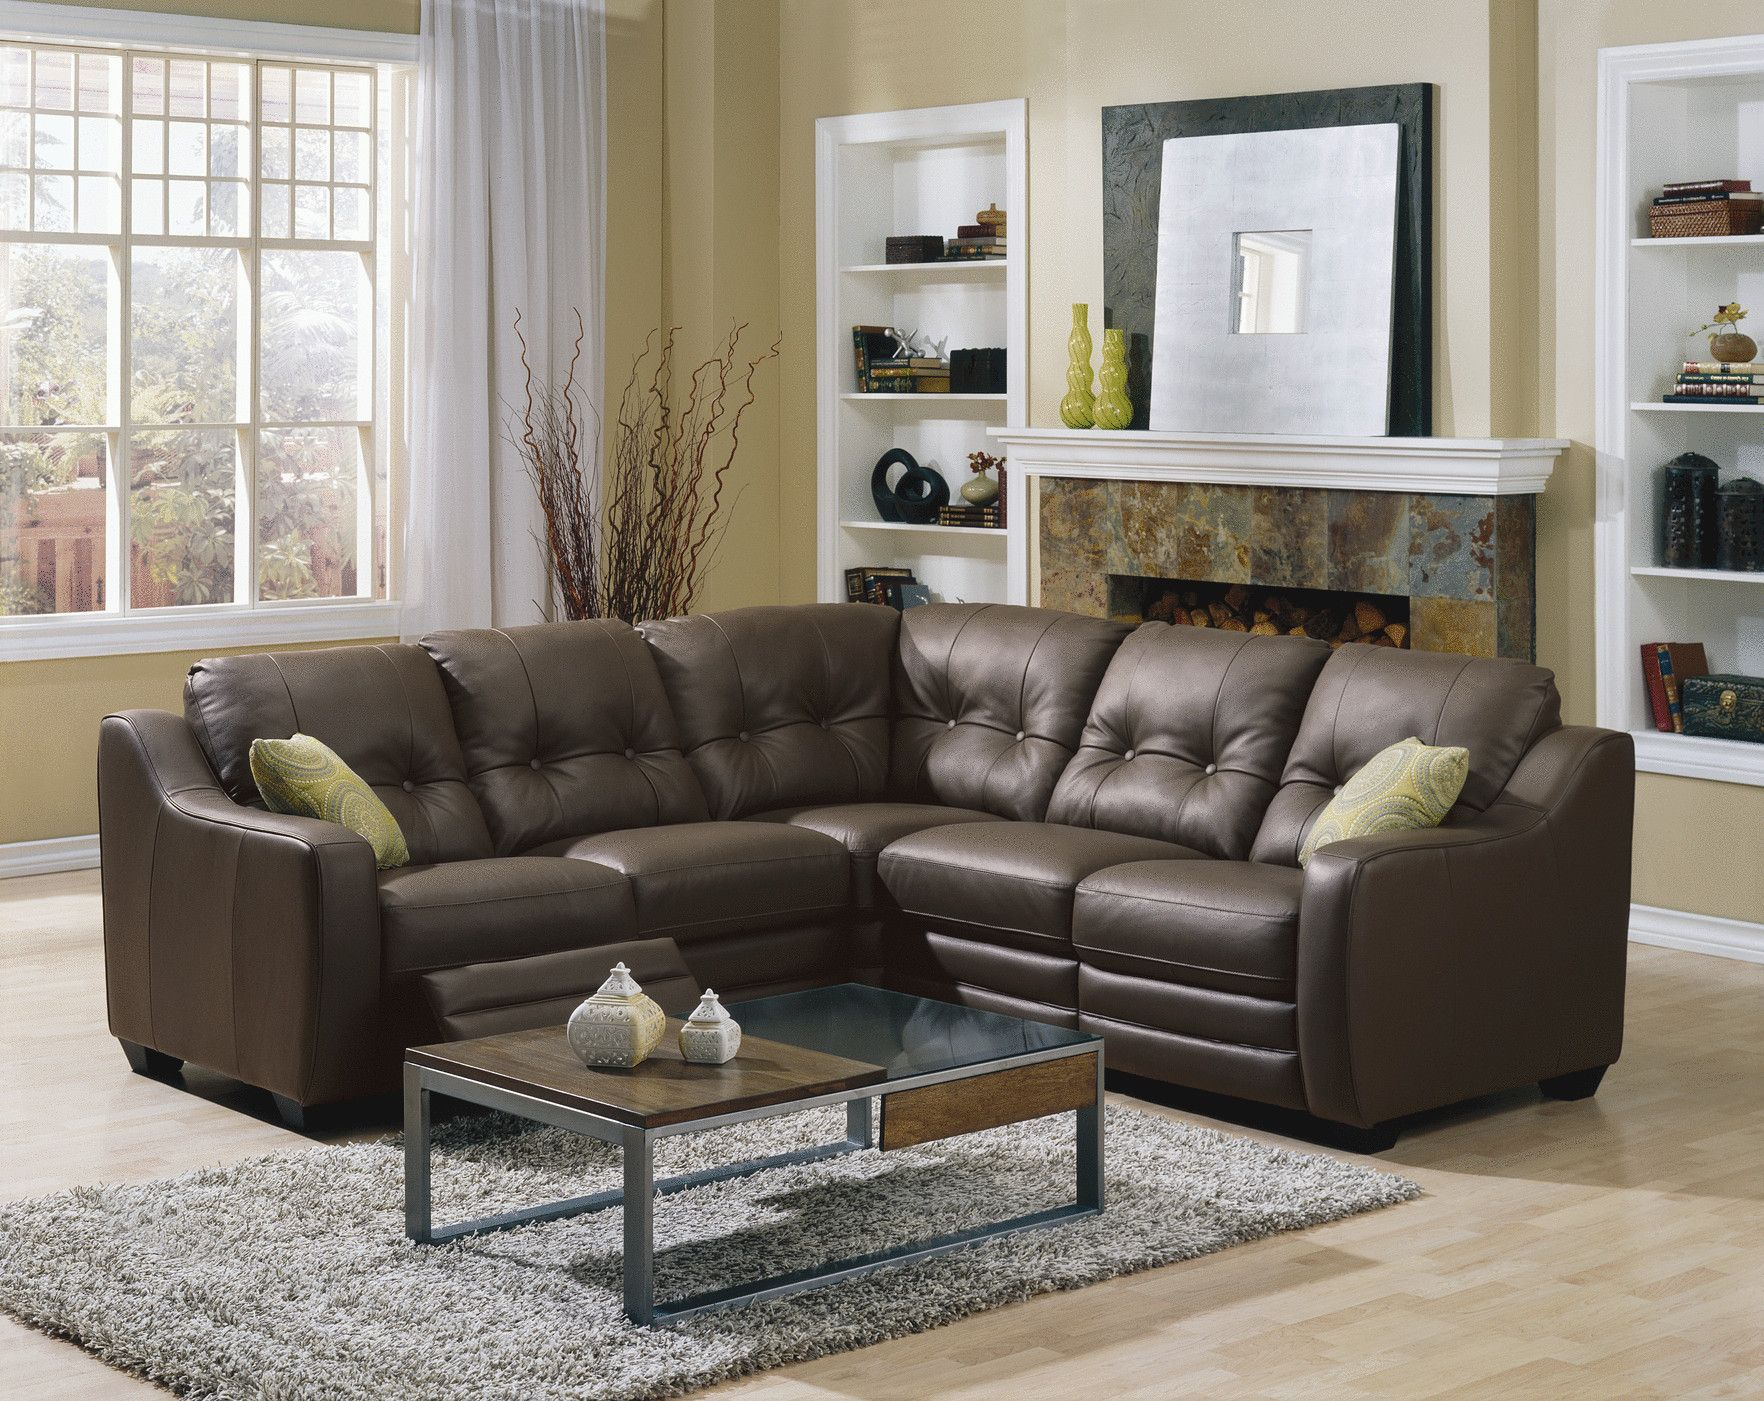 Cambo leather sectional seating | Small sectional sofa ...